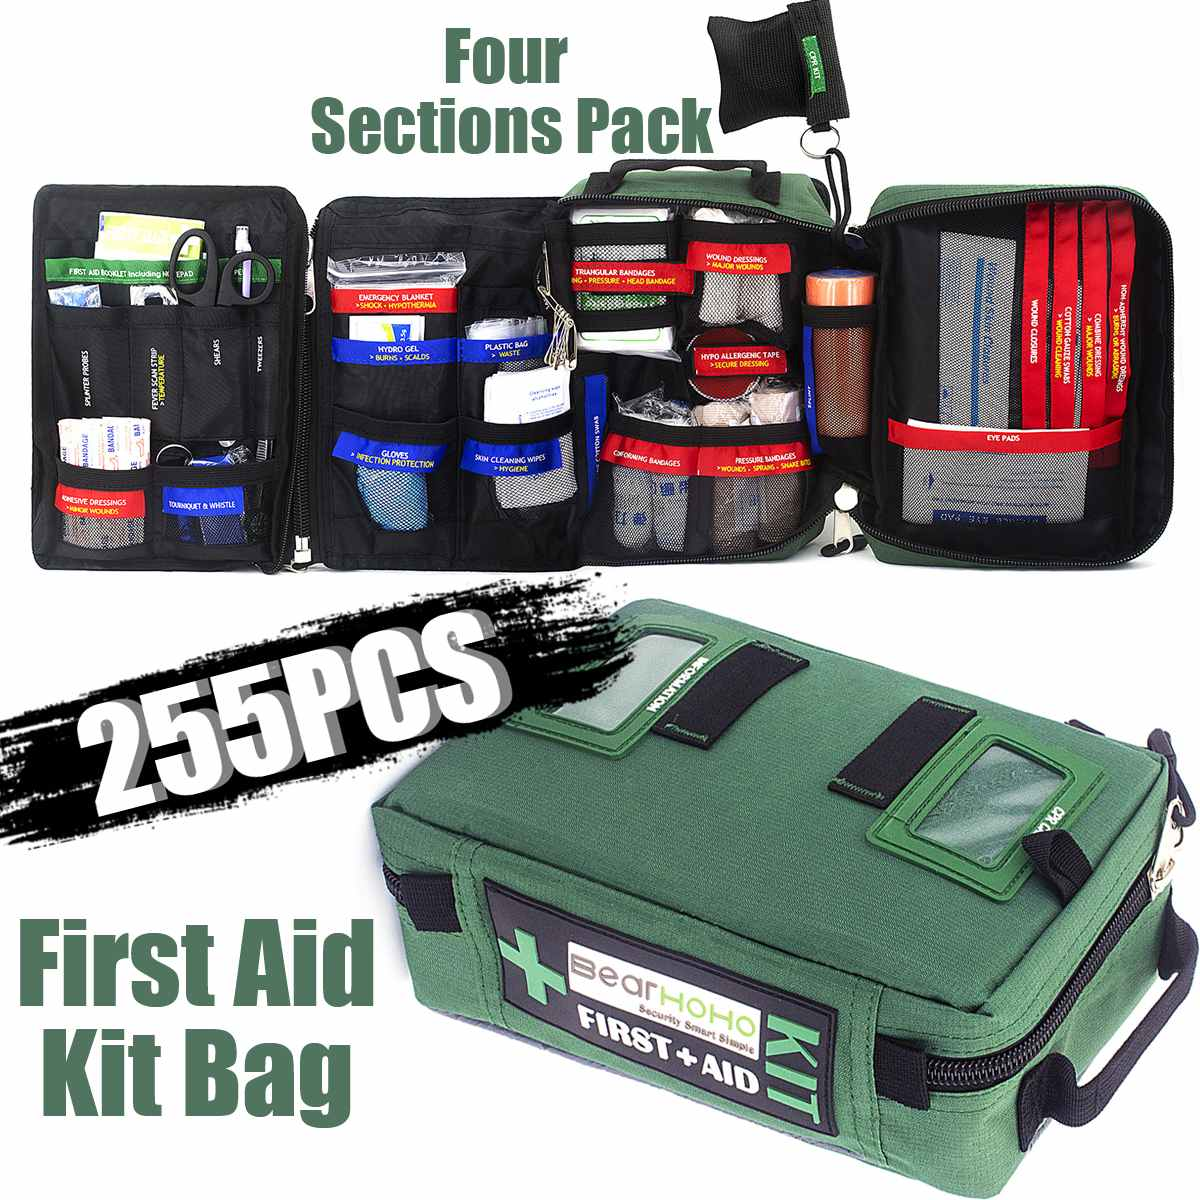 255Pcs Handy First Aid Kit Bag Lightweight Emergency Medical Rescue Bags For Home Outdoors Car Travel School Hiking Survival